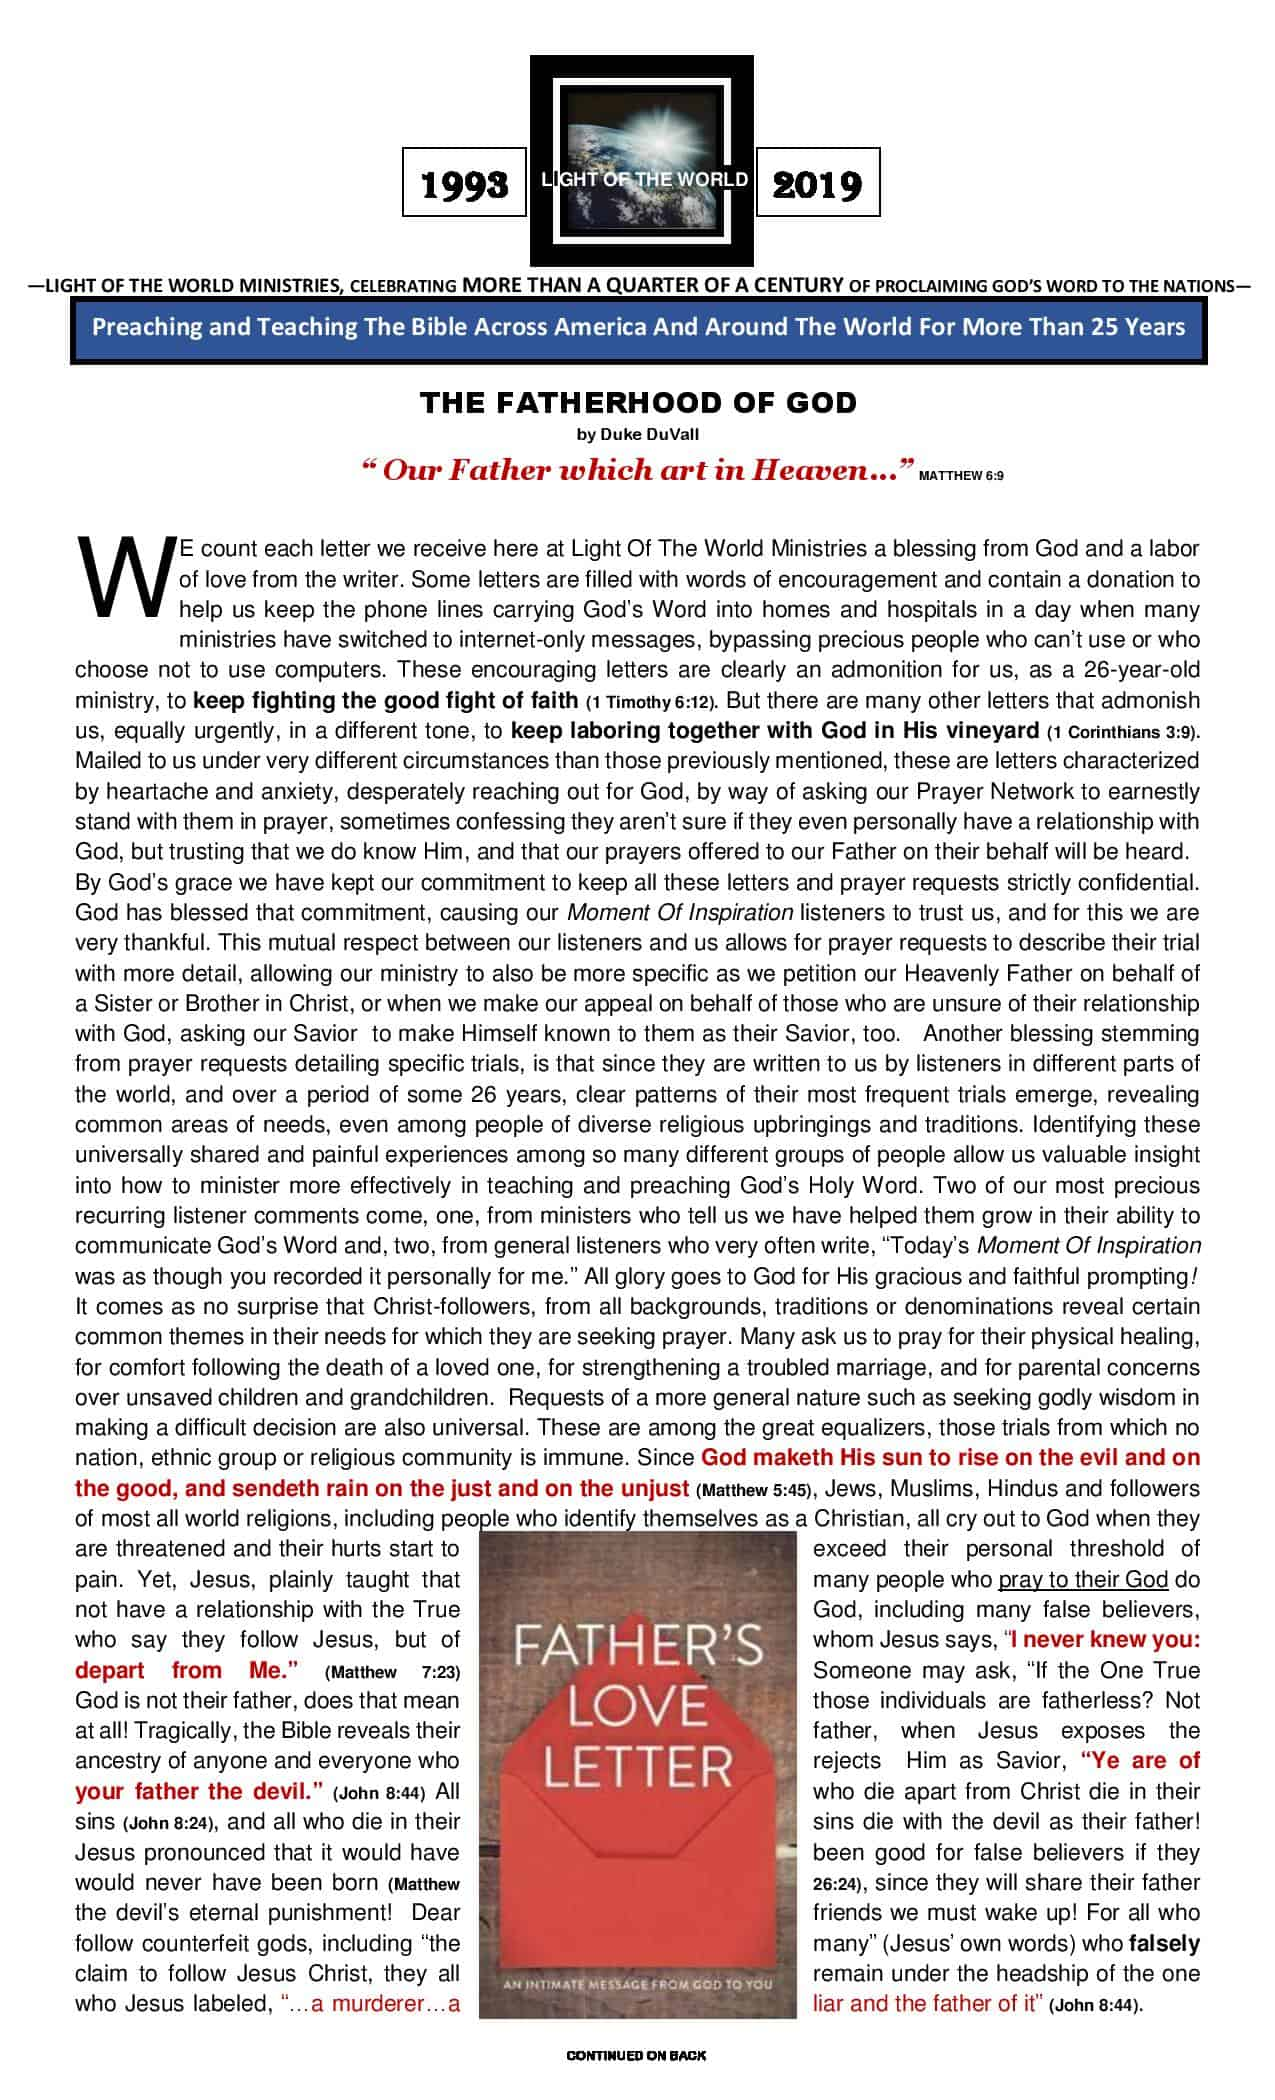 LOTW Fathers Day 2019 Newsletter - Page 1